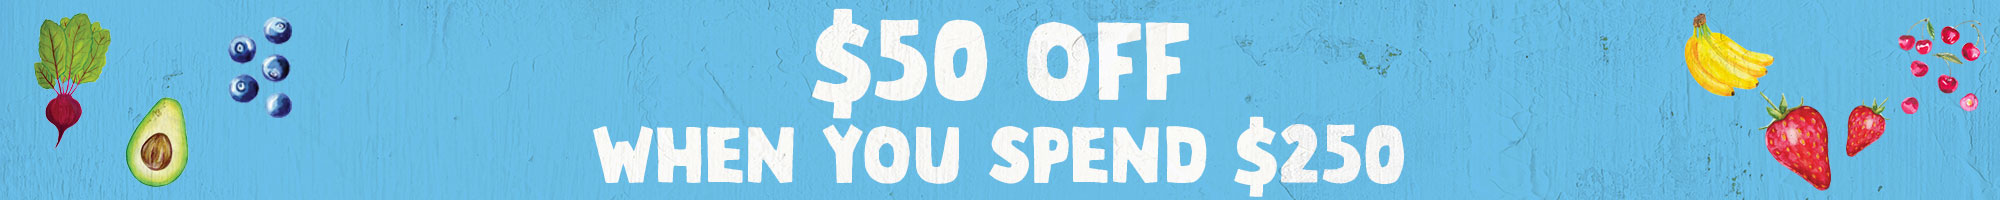 Save $50 off when you spend over $250